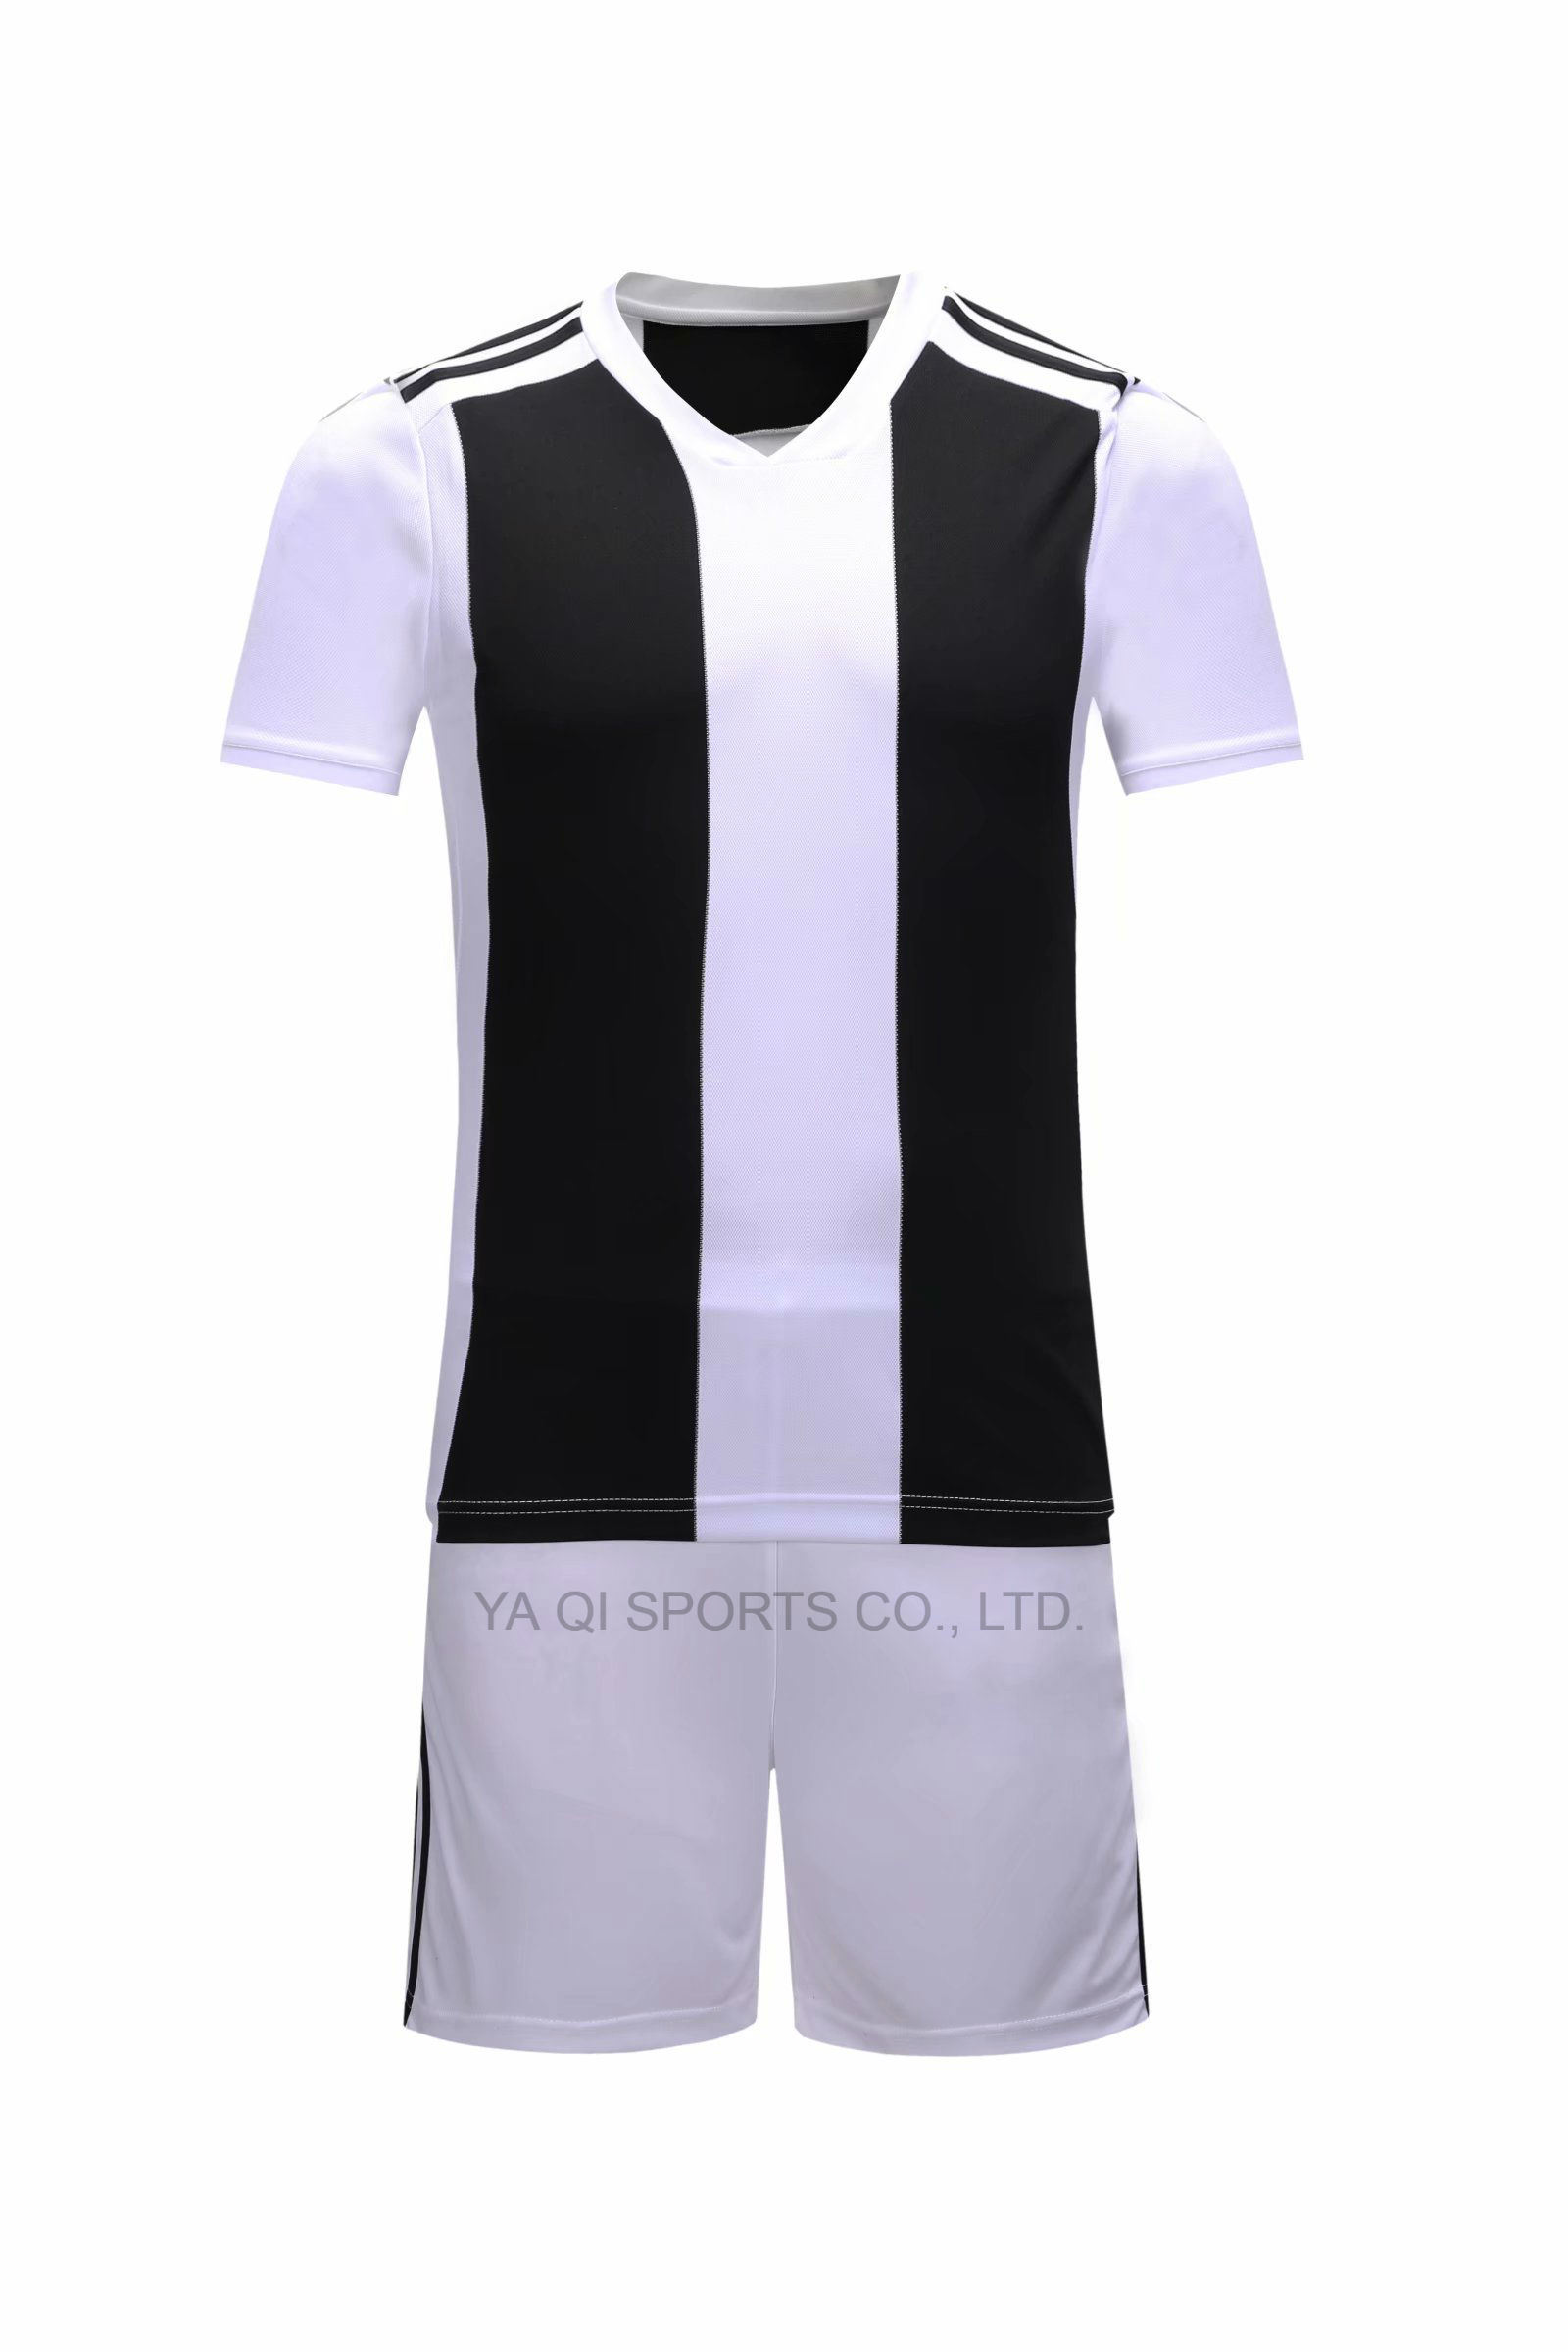 best website 1c8c4 41389 [Hot Item] 2018-2019 Kid and Adult Customized Juventus Ronaldoo Soccer  Jersey